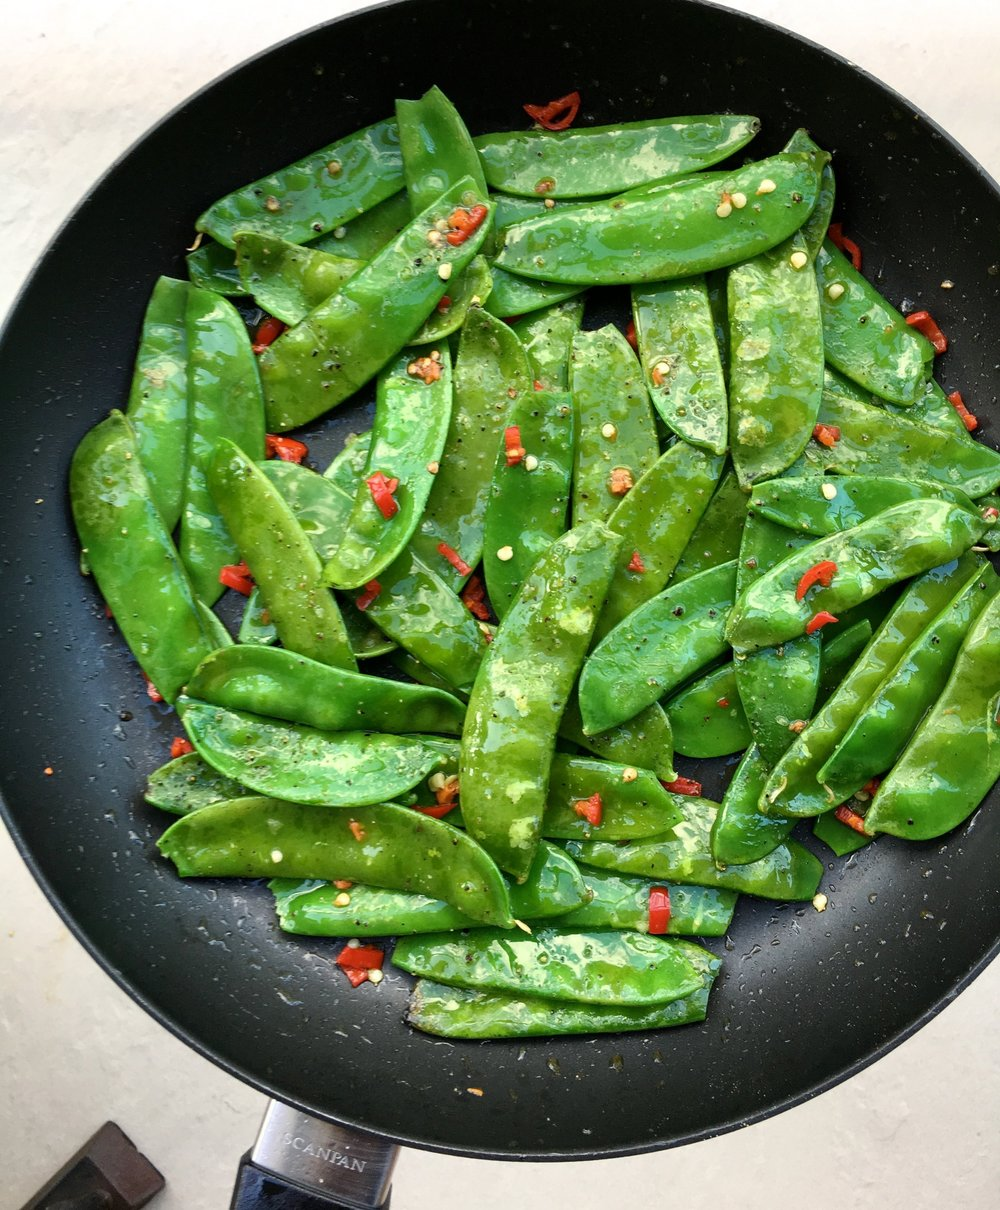 Low fodmaps recipe snow peas.jpg